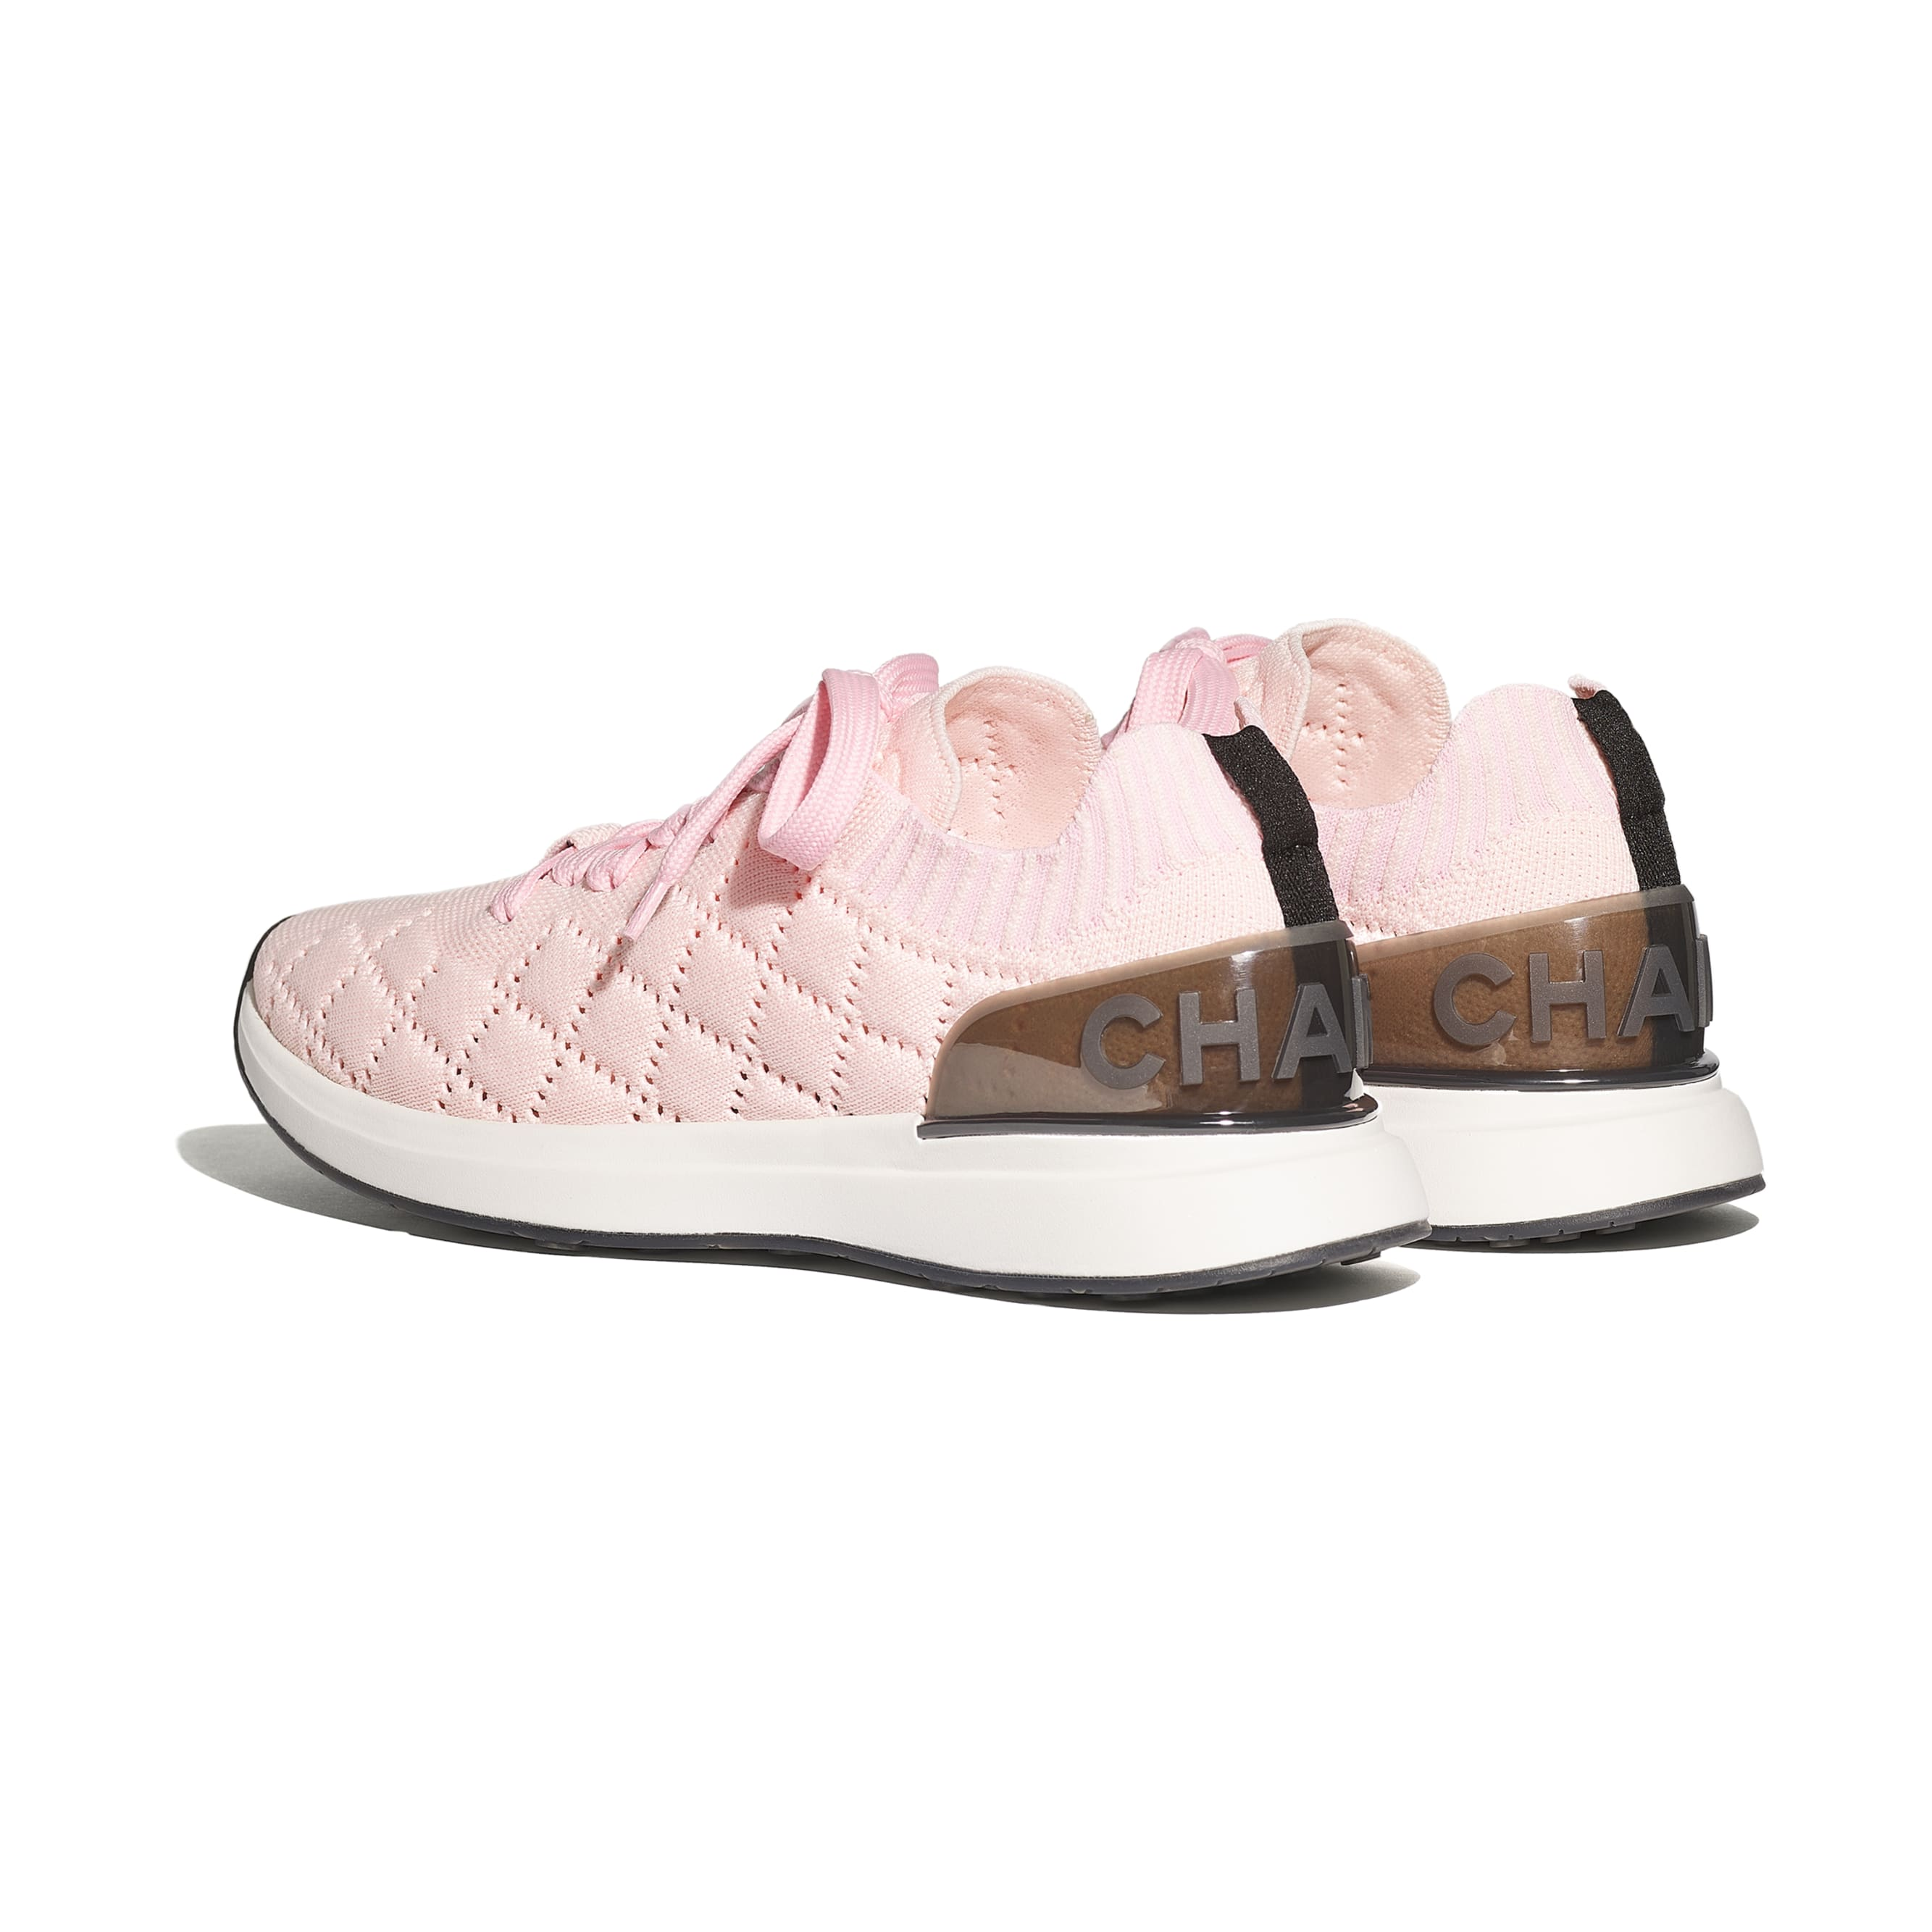 Trainers - Pink - Mixed Fibres - CHANEL - Other view - see standard sized version